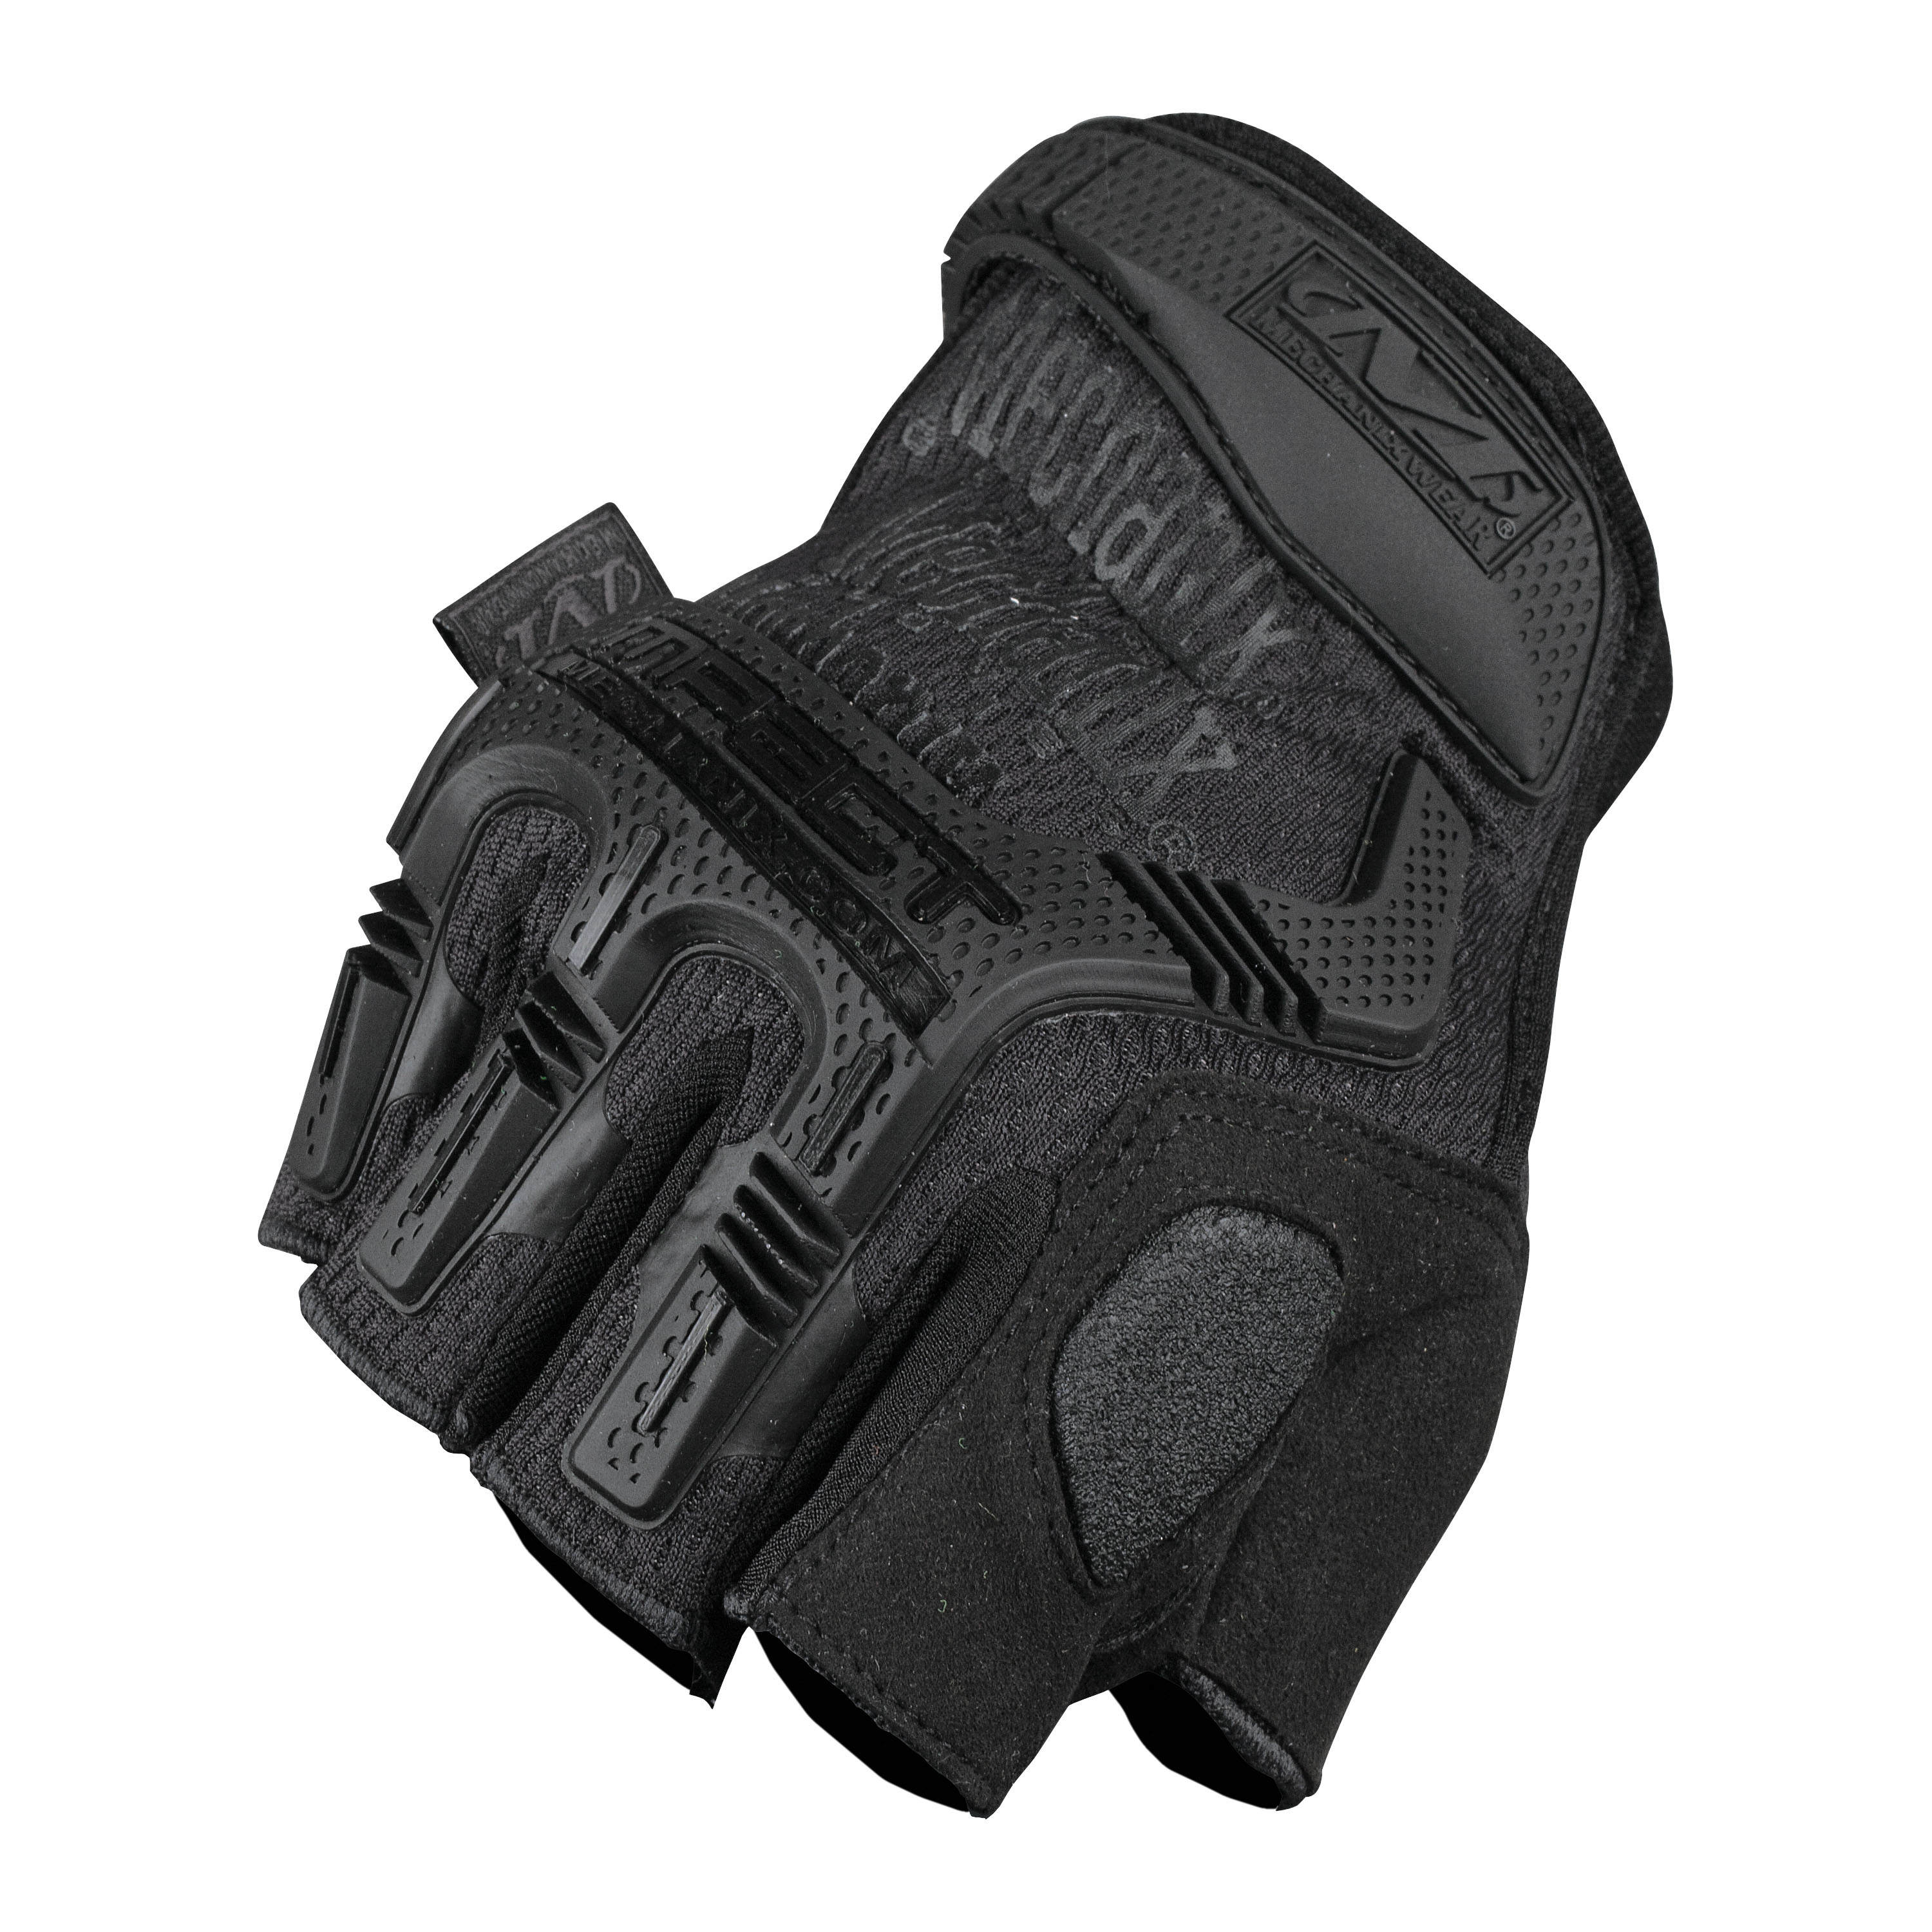 Guantes Mechanix M-Pact sin dedos covert